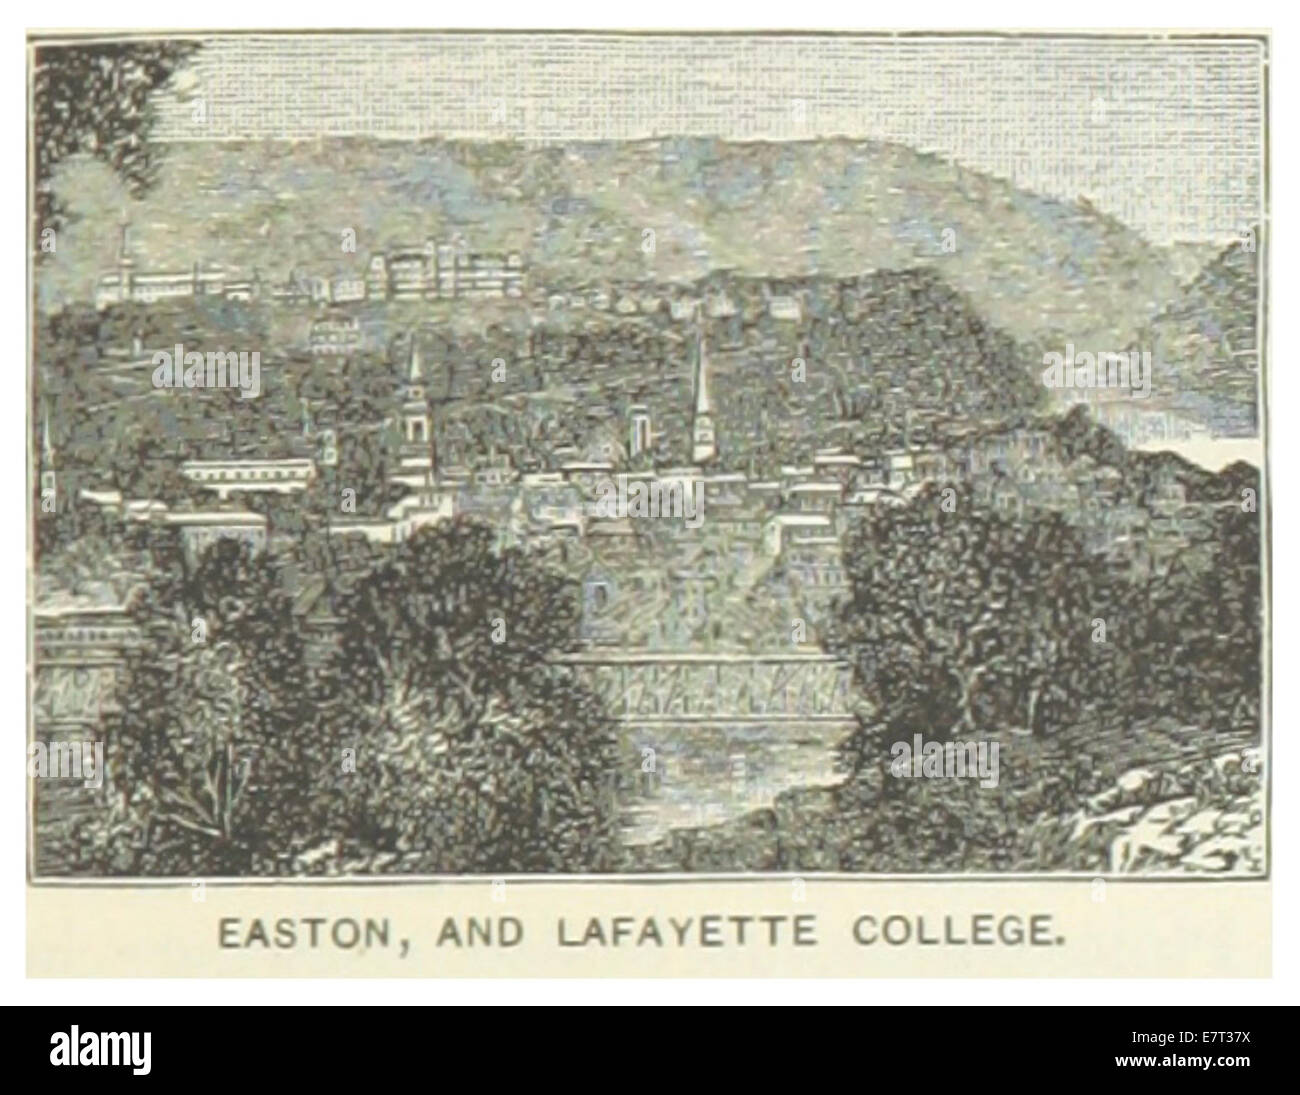 US-PA(1891) p737 EASTON AND LAFAYETTE COLLEGE - Stock Image